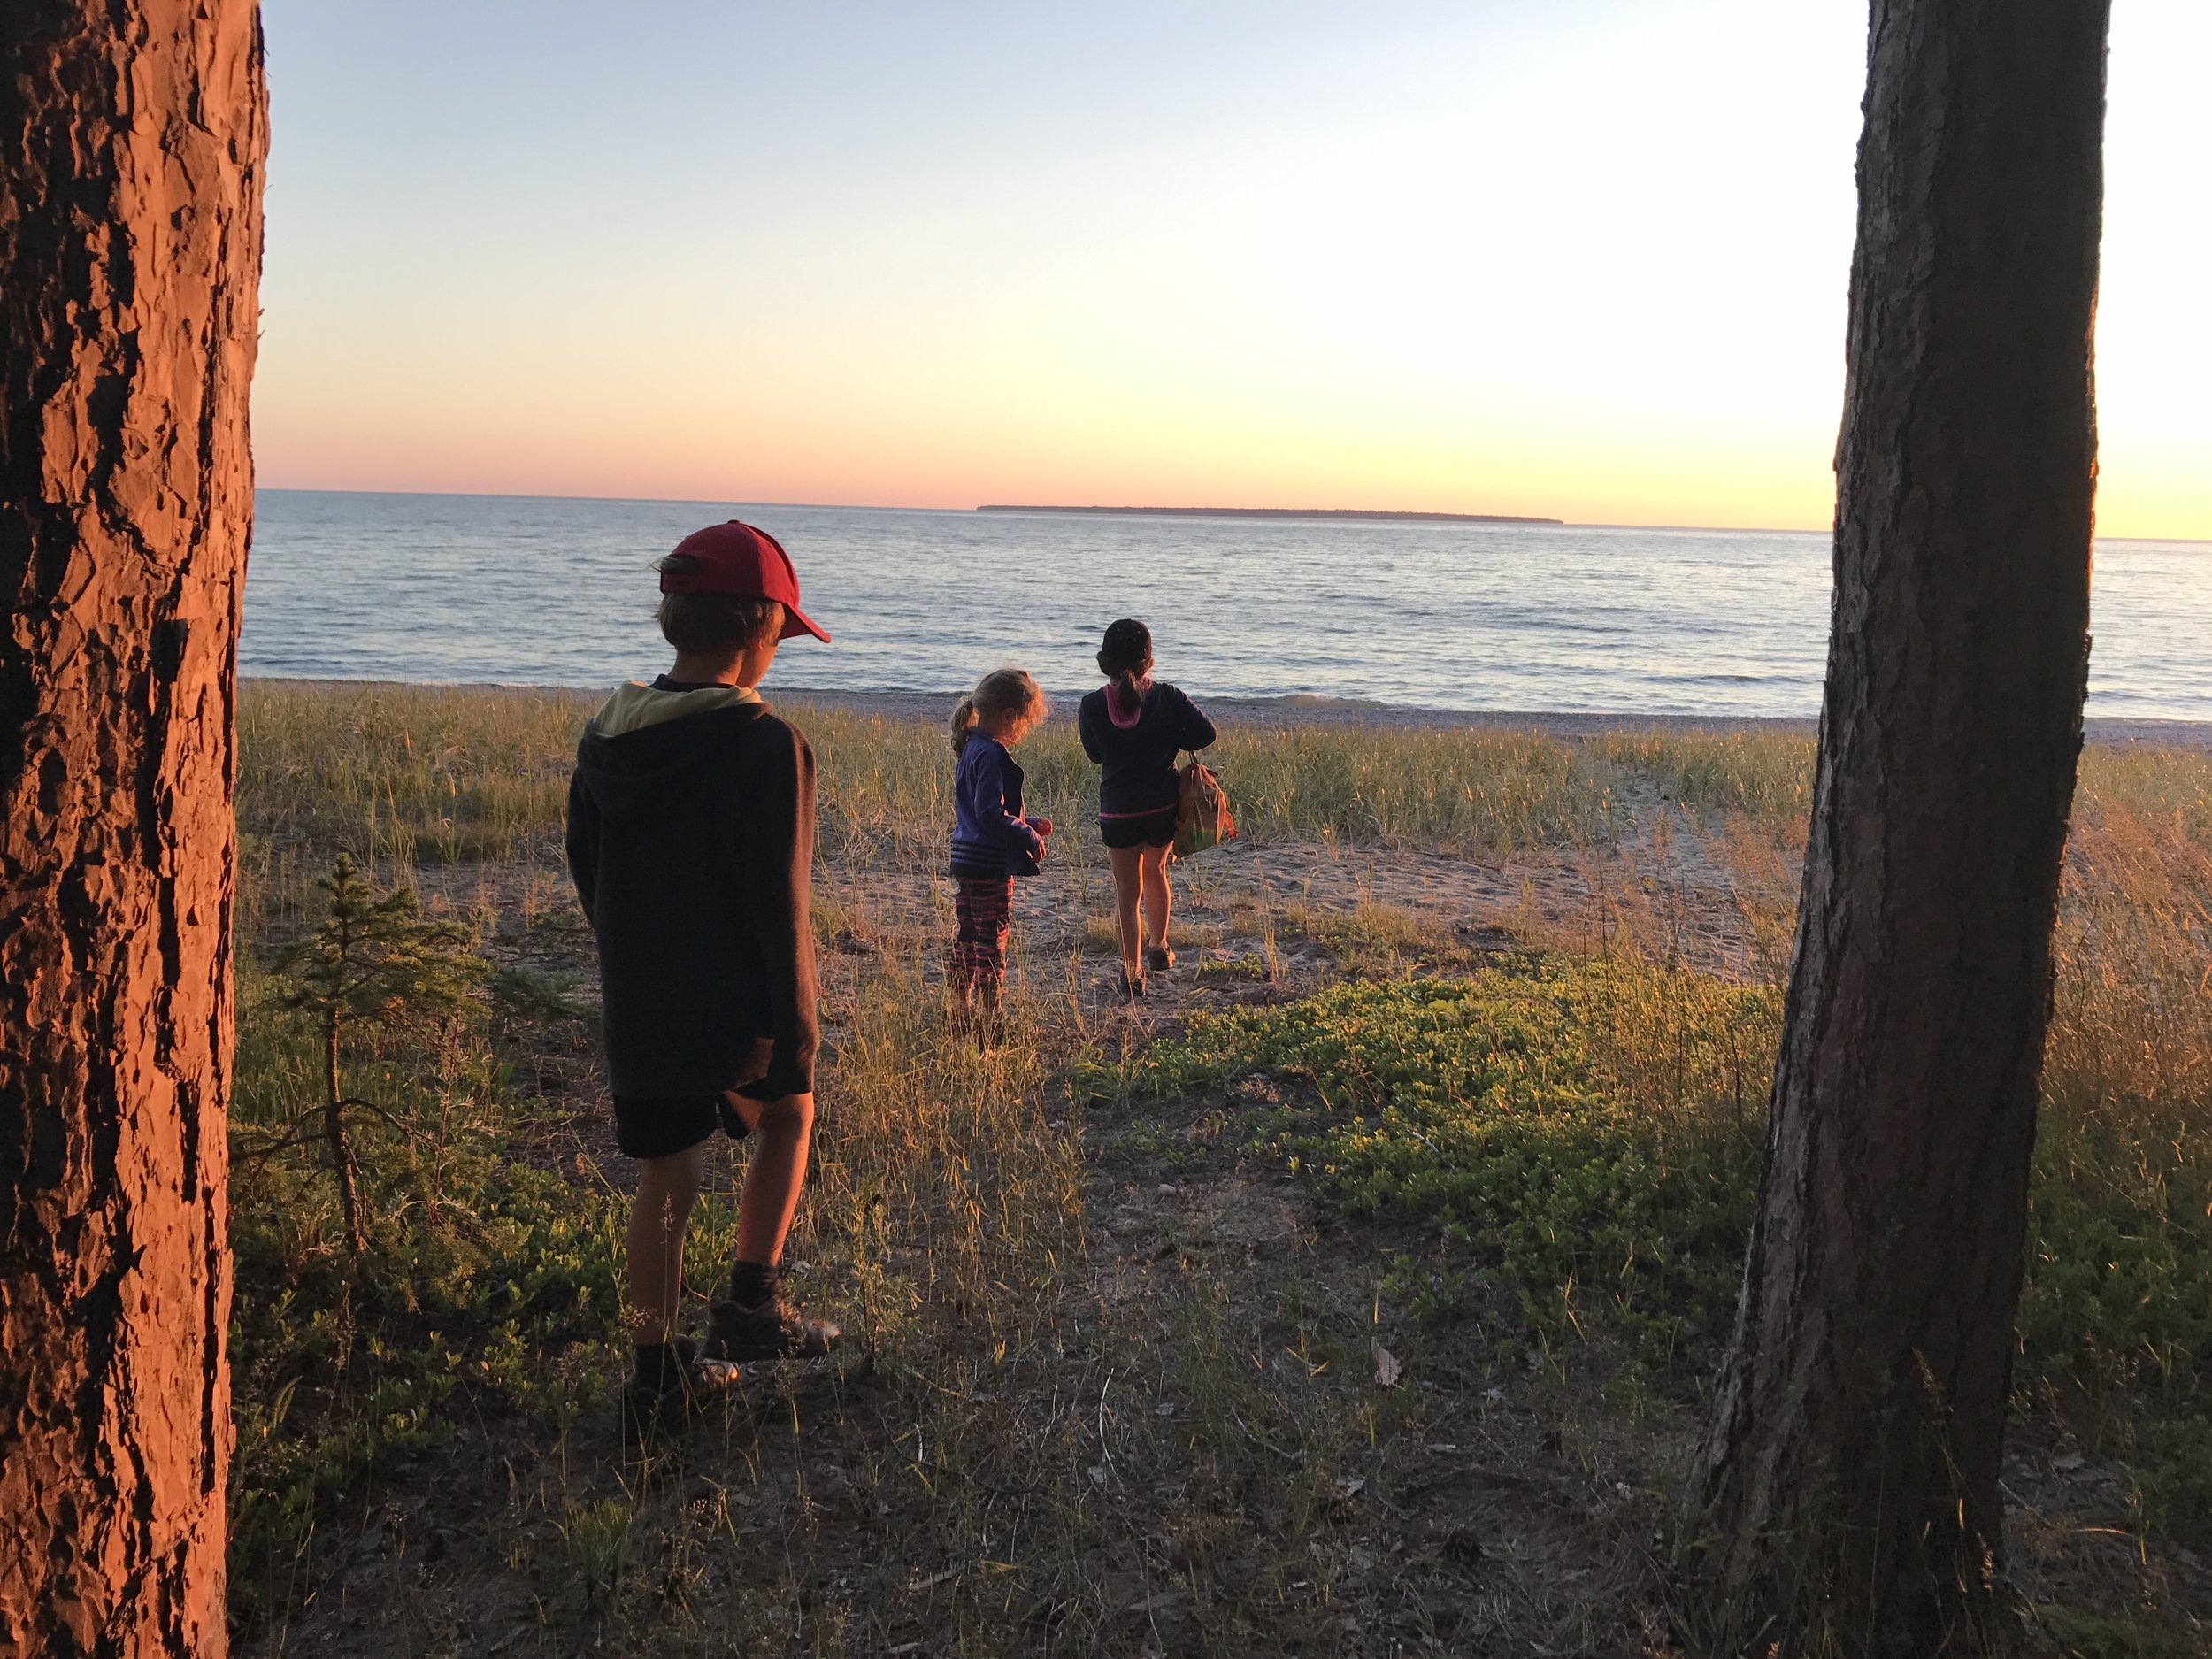 Walking to the Lake Superior Provincial Park's beach.